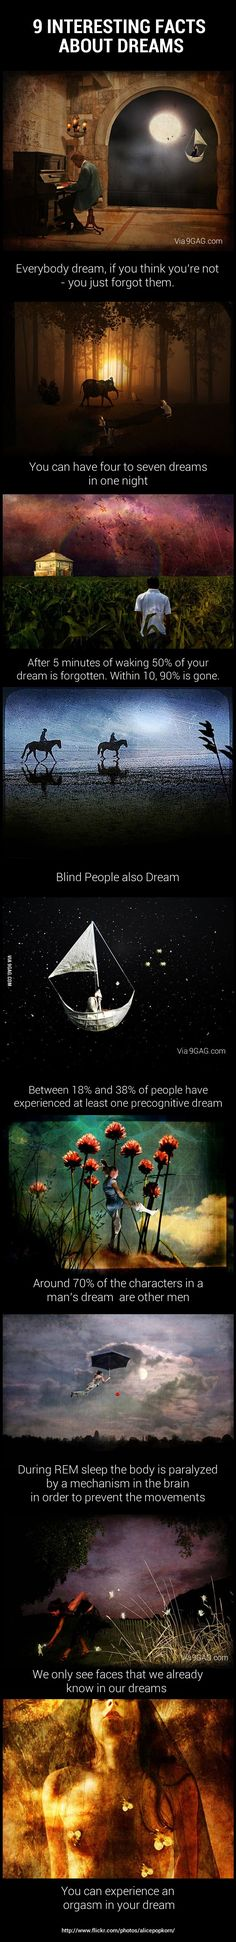 9 interesting facts about dreams